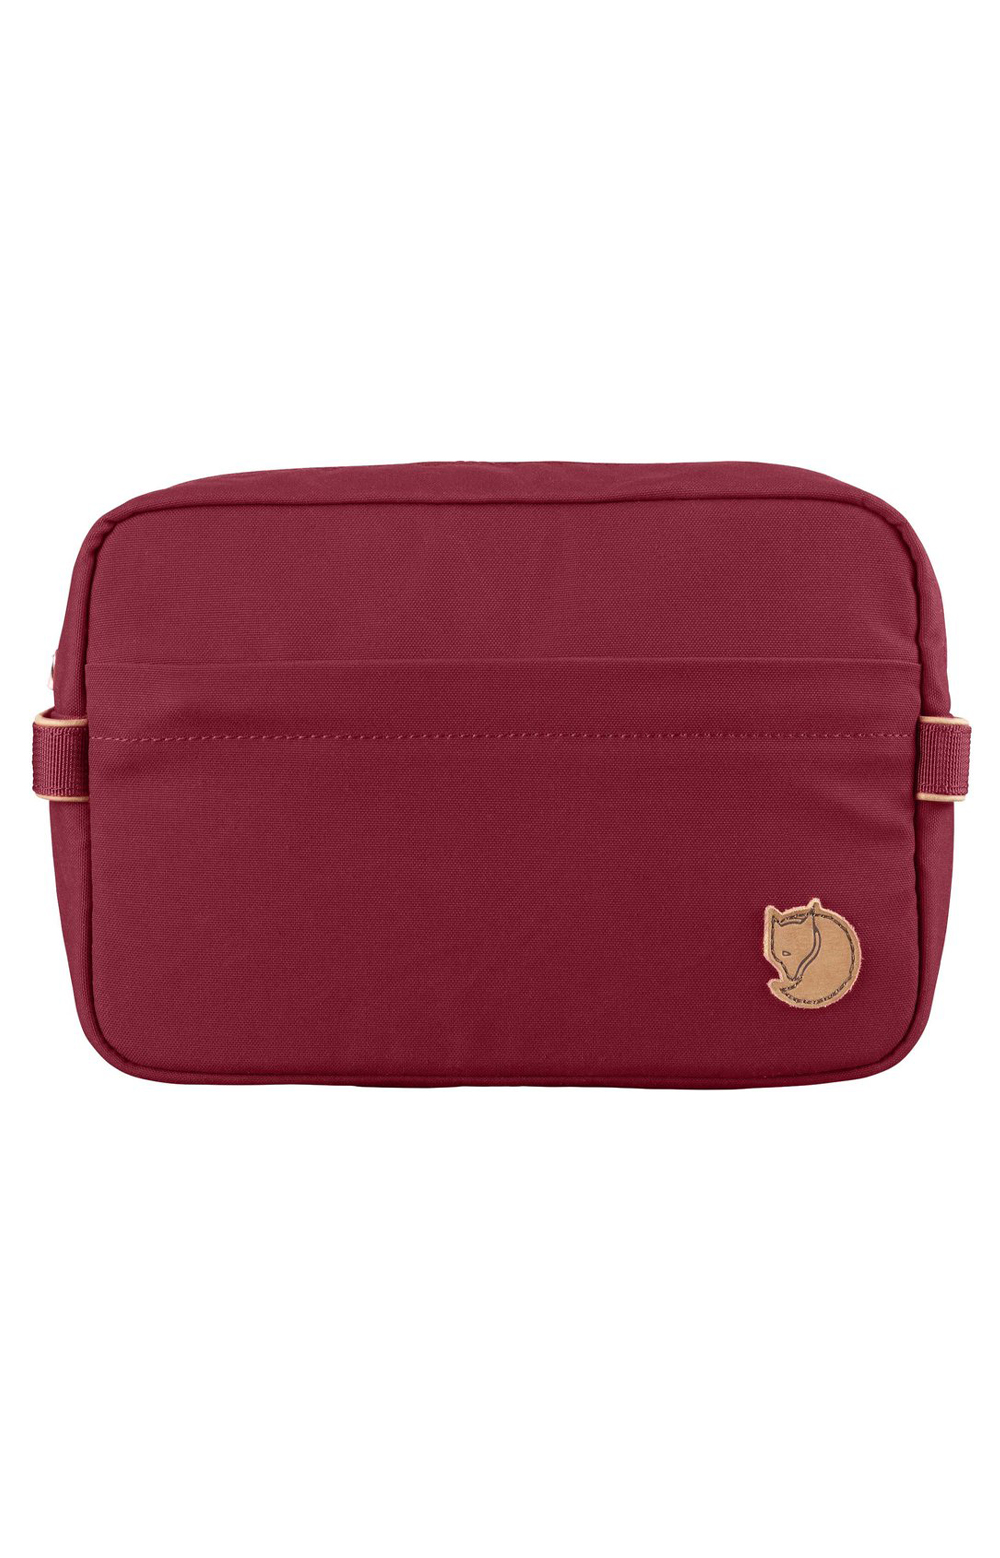 Travel Toiletry Bag - Redwood